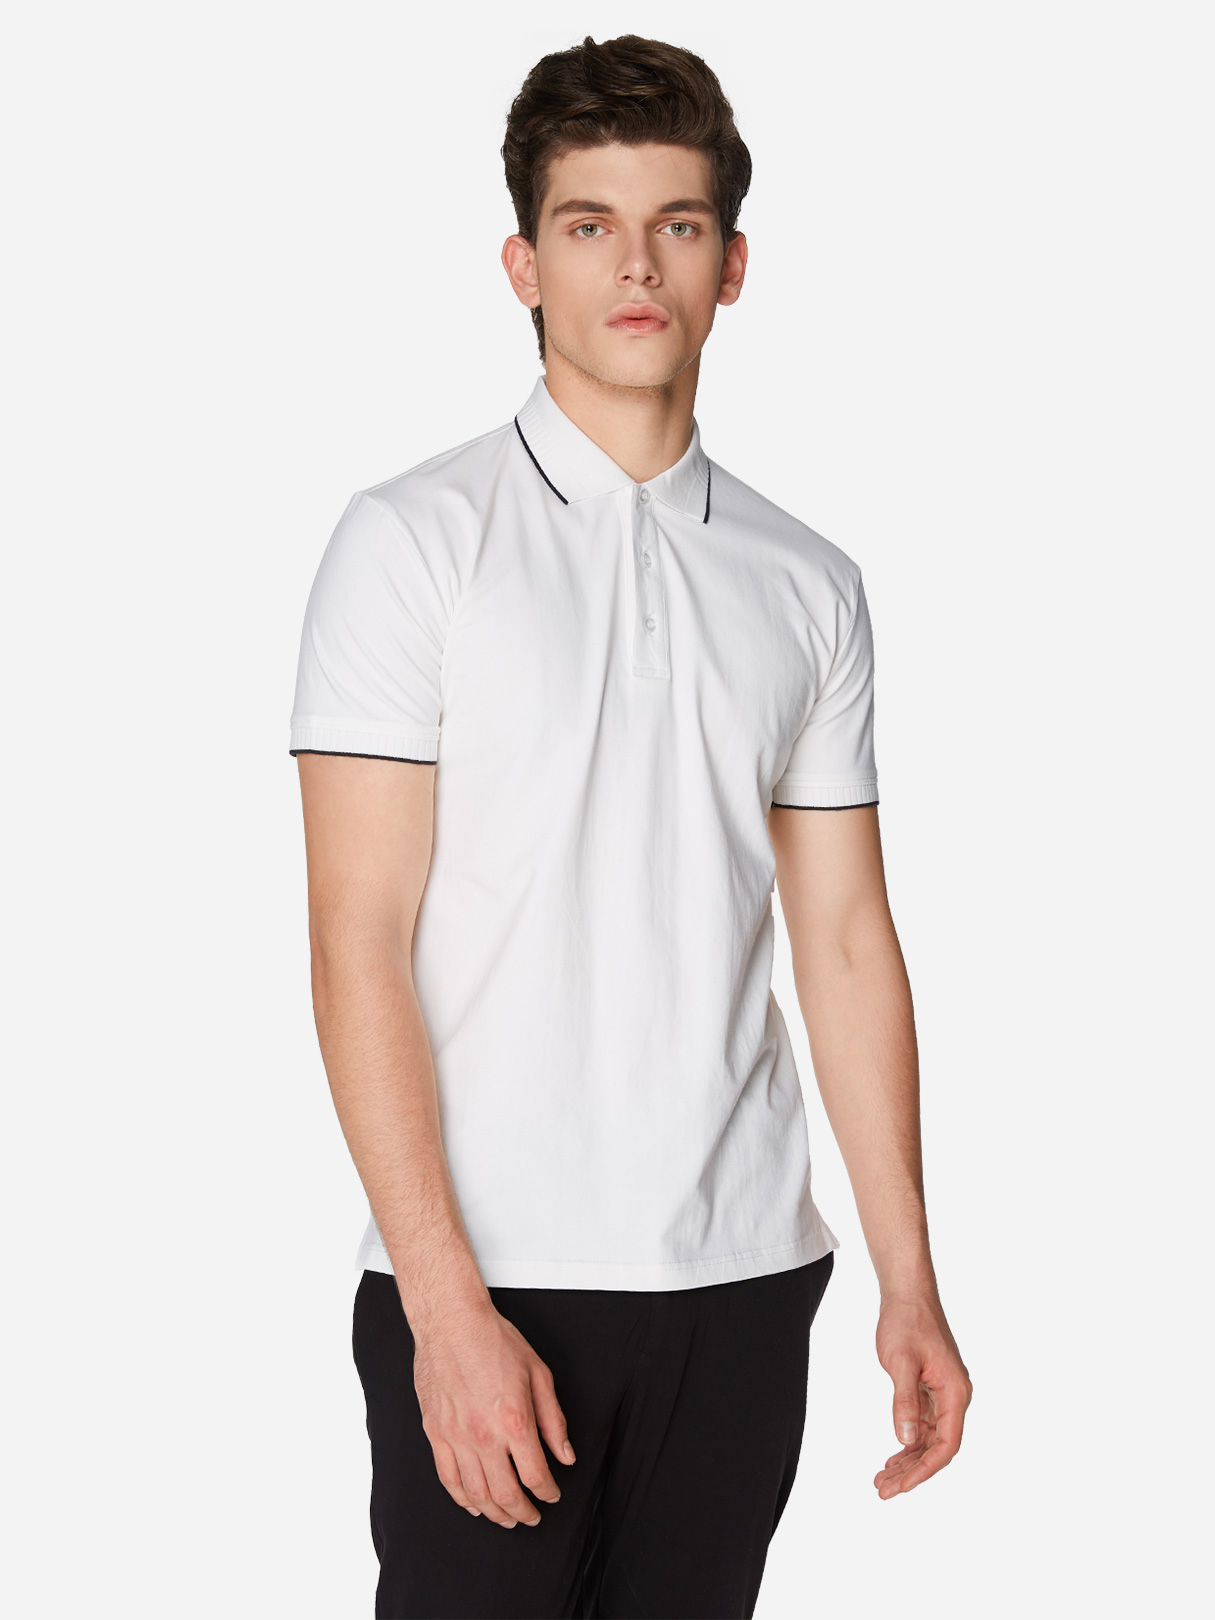 White Pure Color Three Button Short Sleeve Men's Polo Shirt white with wine red line button design short sleeve men s polo shirt